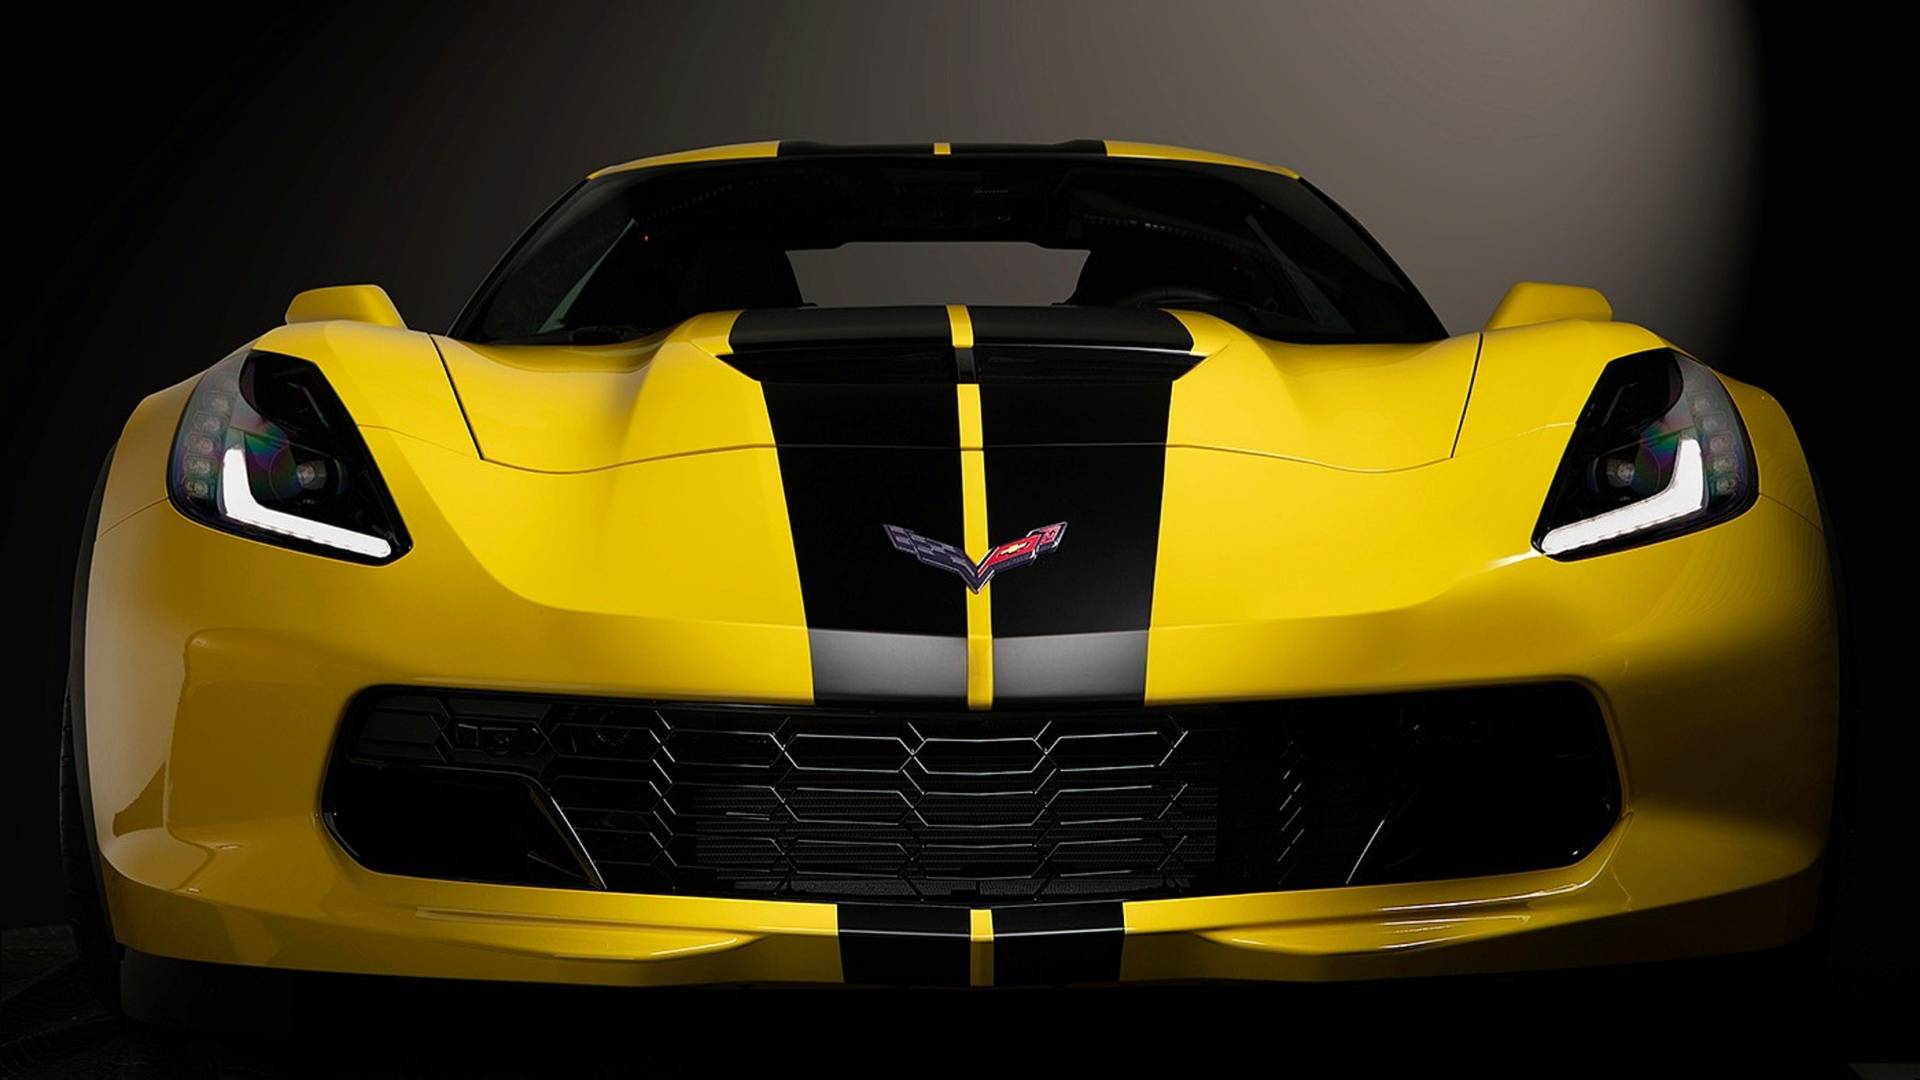 Hertz celebrates 100th anniversary with special Corvette Z06